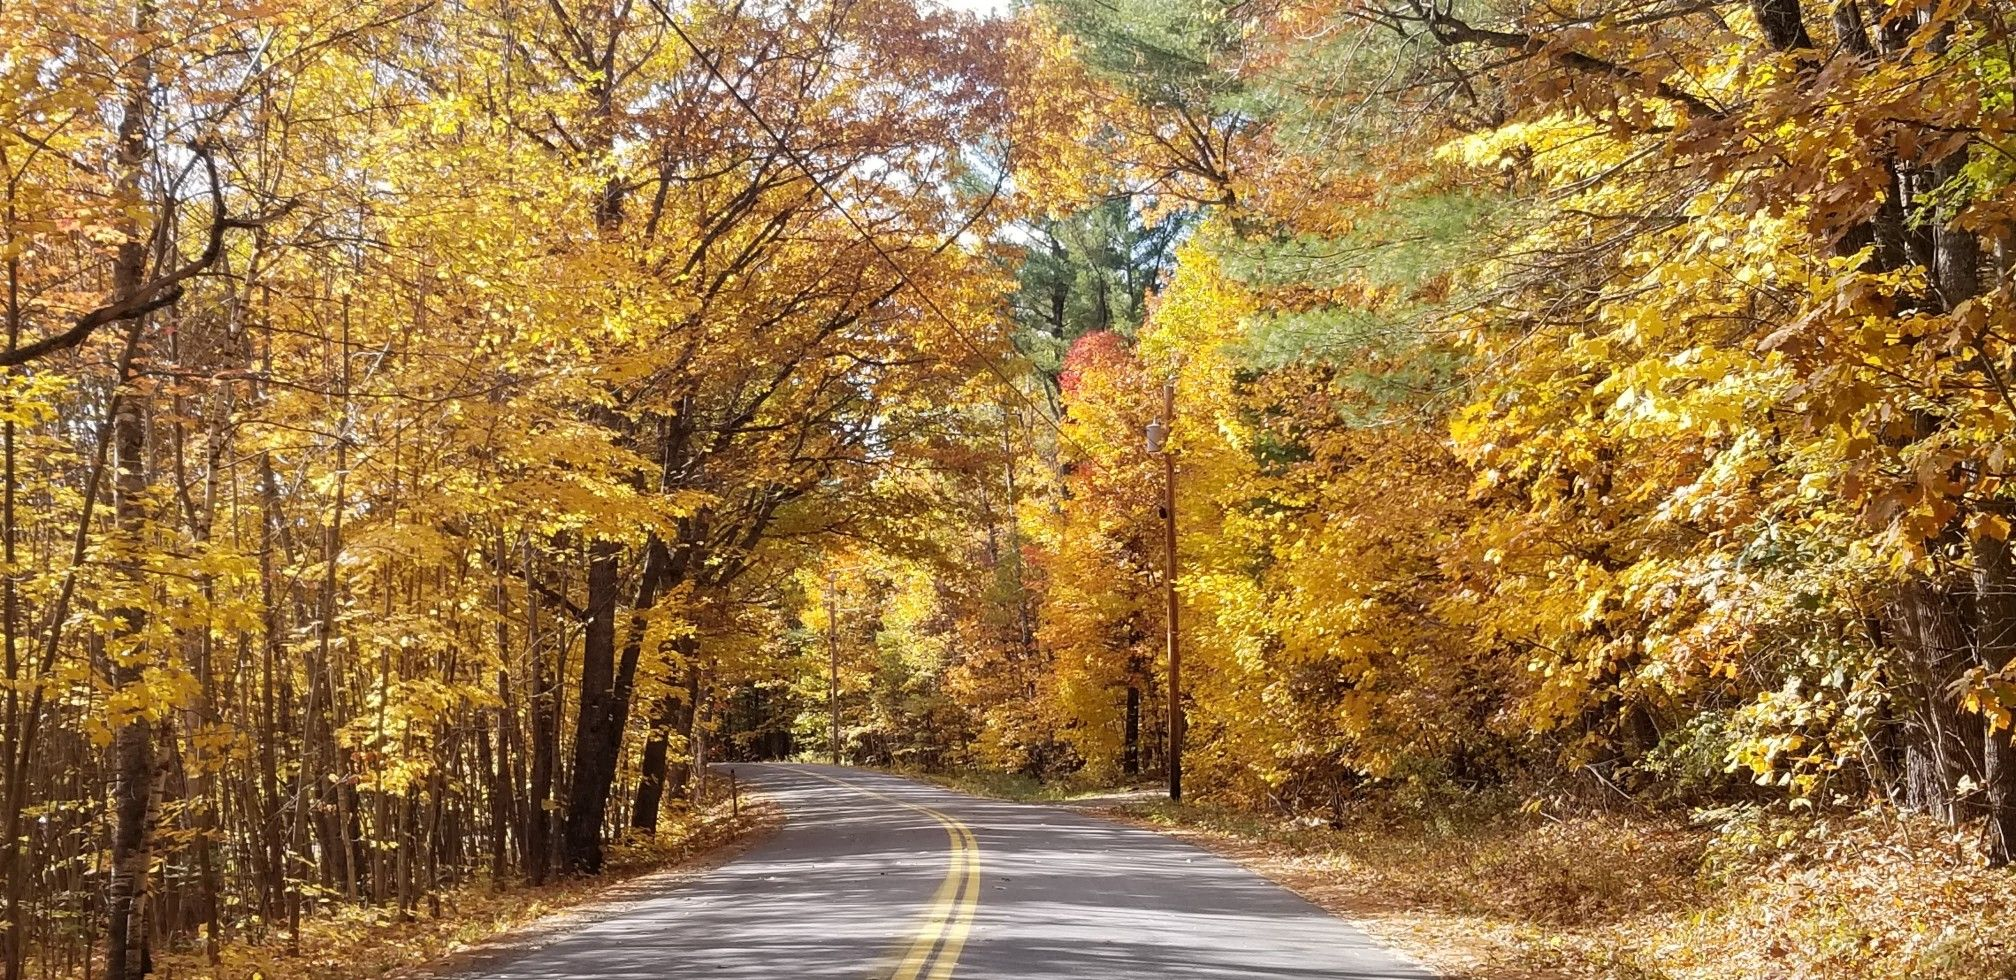 Pin by Kathy LaVigne on Autumn Country roads, Road, Country